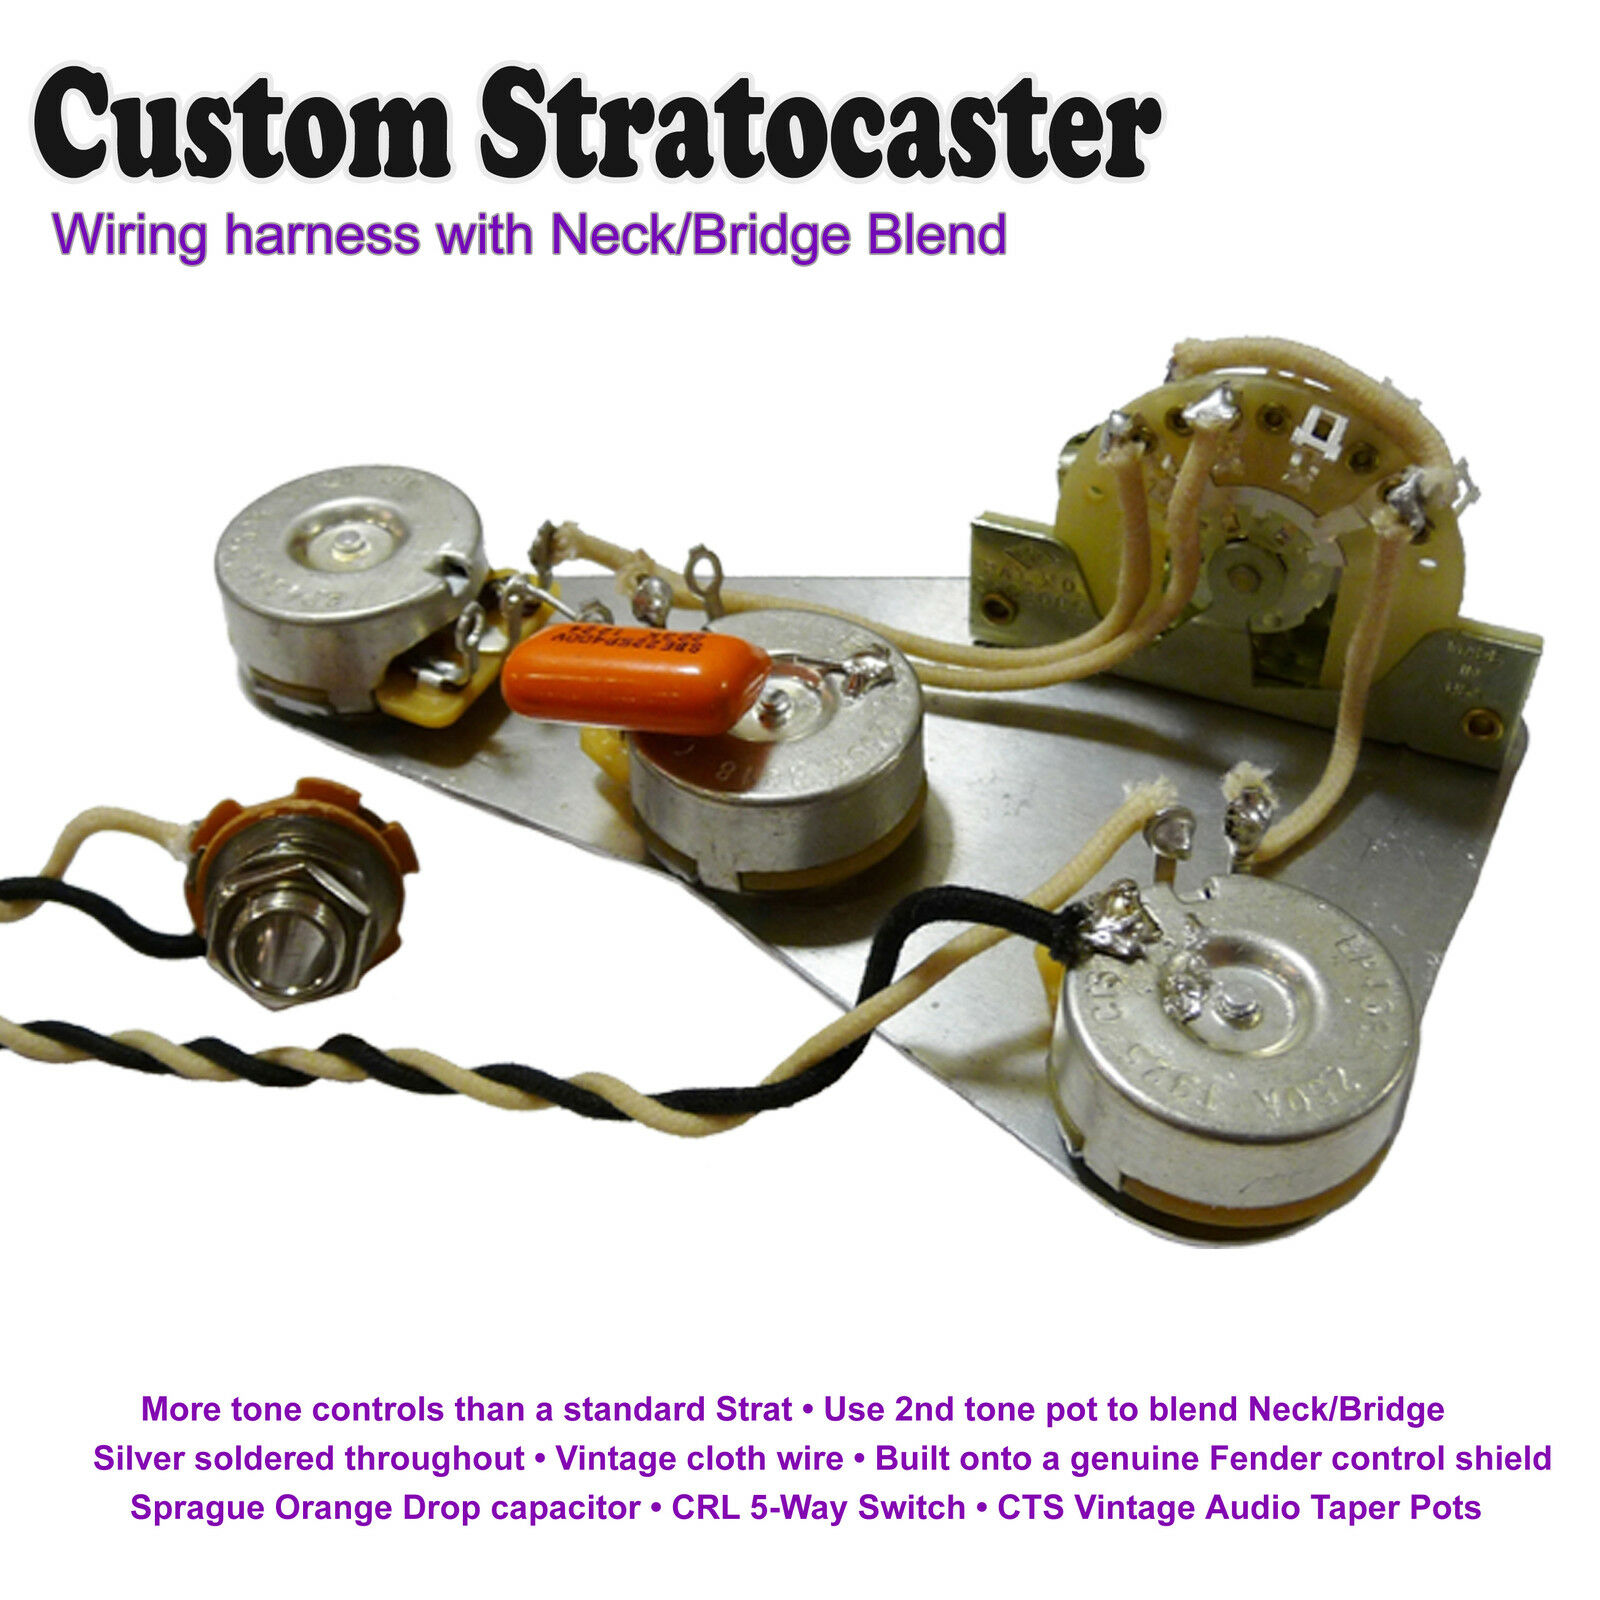 Cts Pots Wiring Diagram Strat Library Wire Harness Shield Deluxe Pre Wired Stratocaster Kit With Neck Bridge